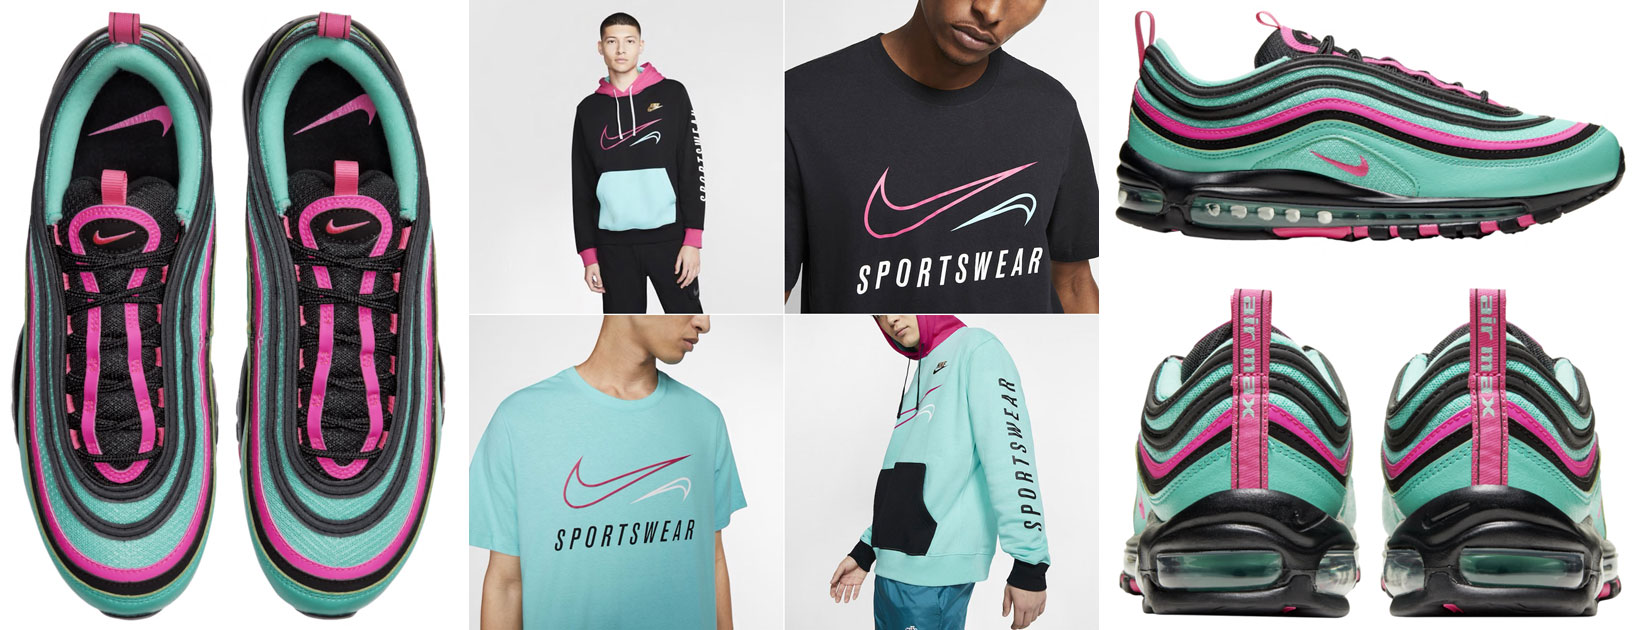 Nike Air Max 97 South Beach 2019 Turquoise Clothing Match